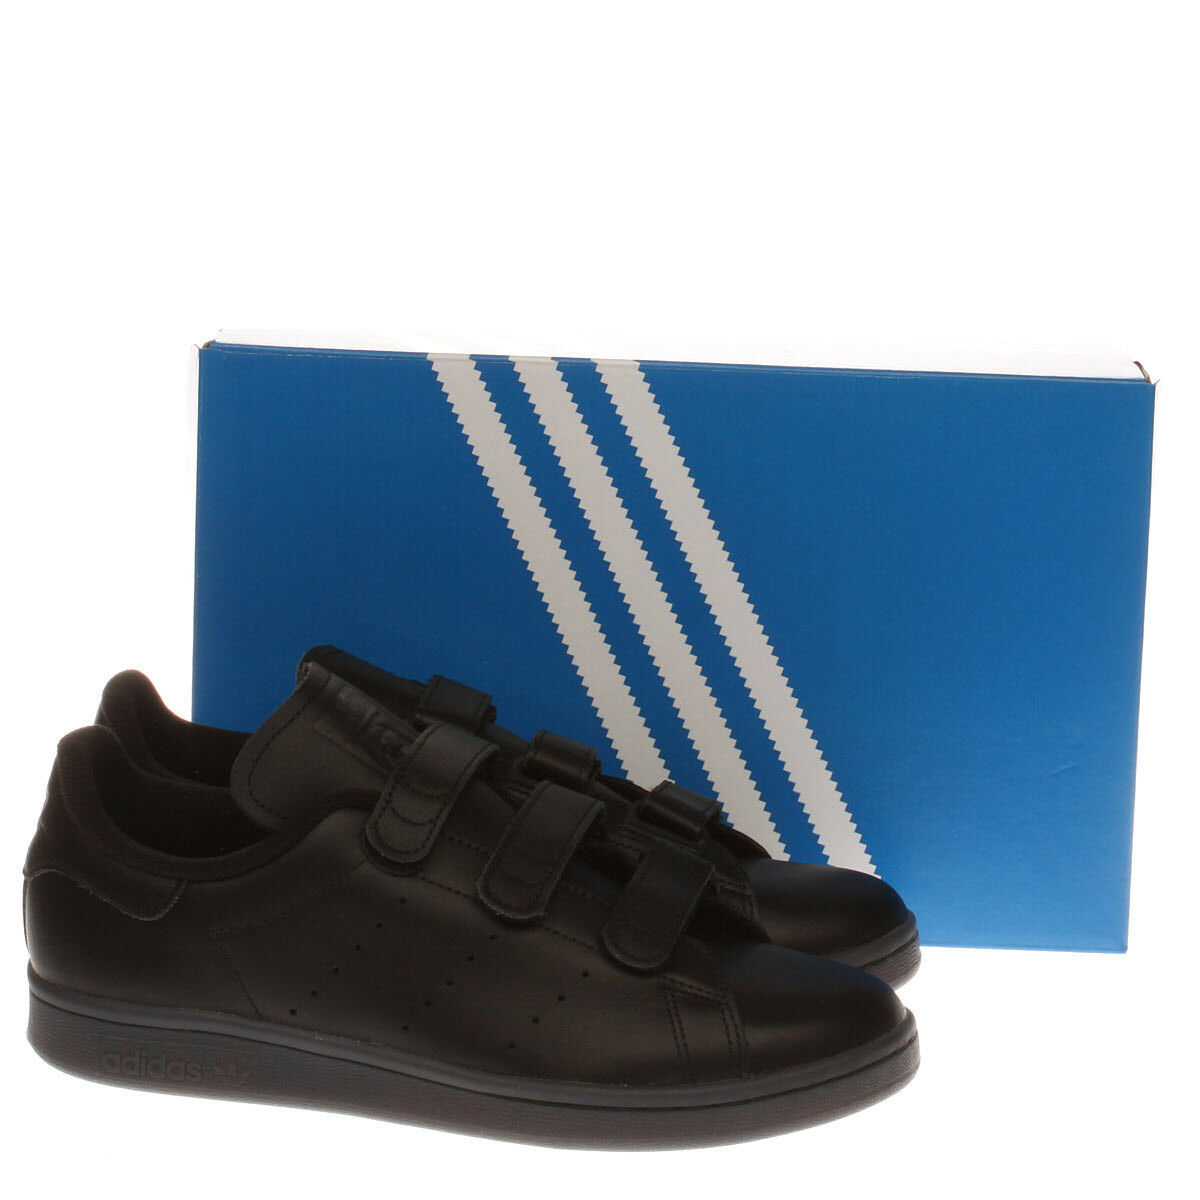 ADIDAS STAN SMITH Negro LEATHER 10 TRAINERS Talla 10 LEATHER 6b3a23